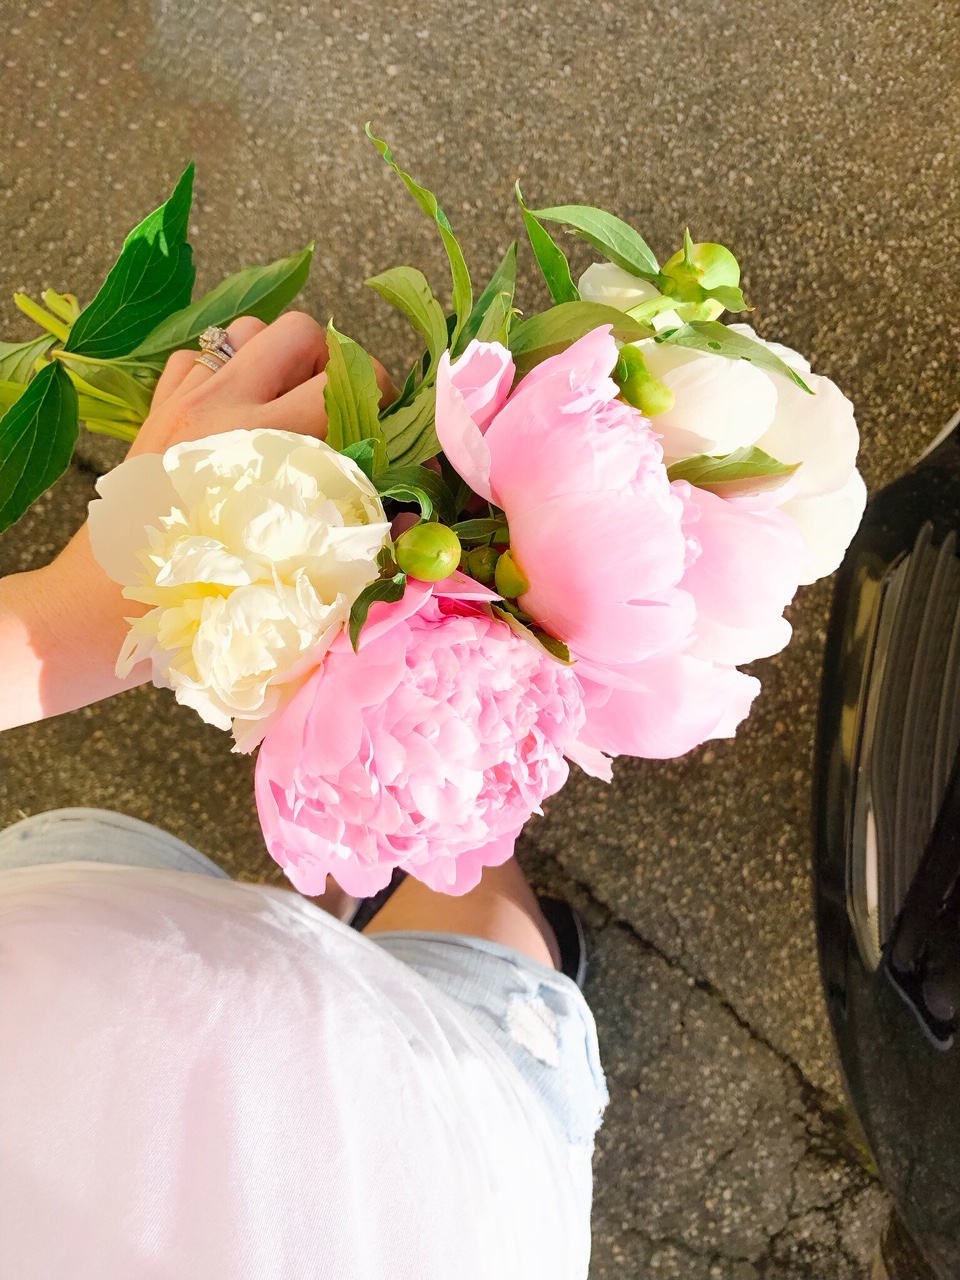 6 Things I Loved This Week (peony season!)